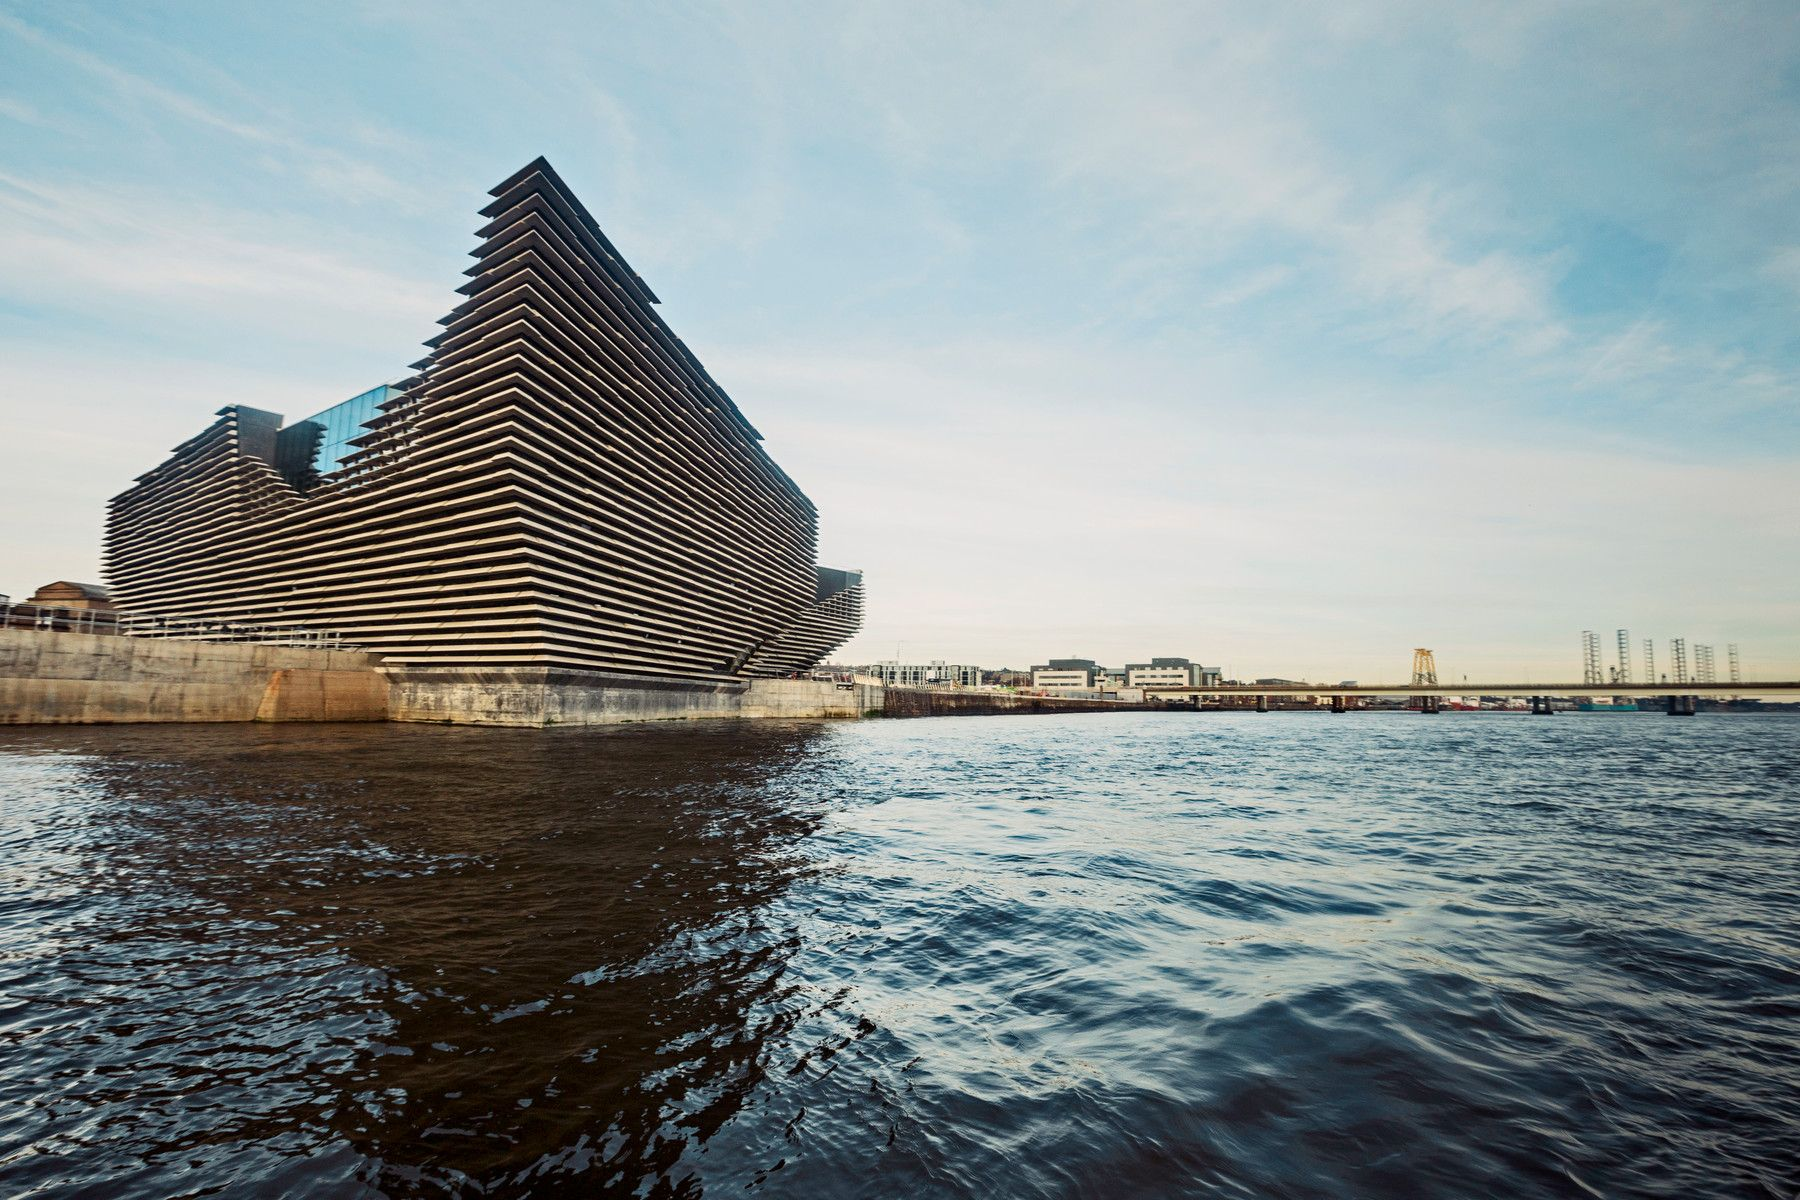 V&A Dundee is one of the institutions participating in the development of Festival UK 2022, which has been dubbed the 'festival of Brexit'